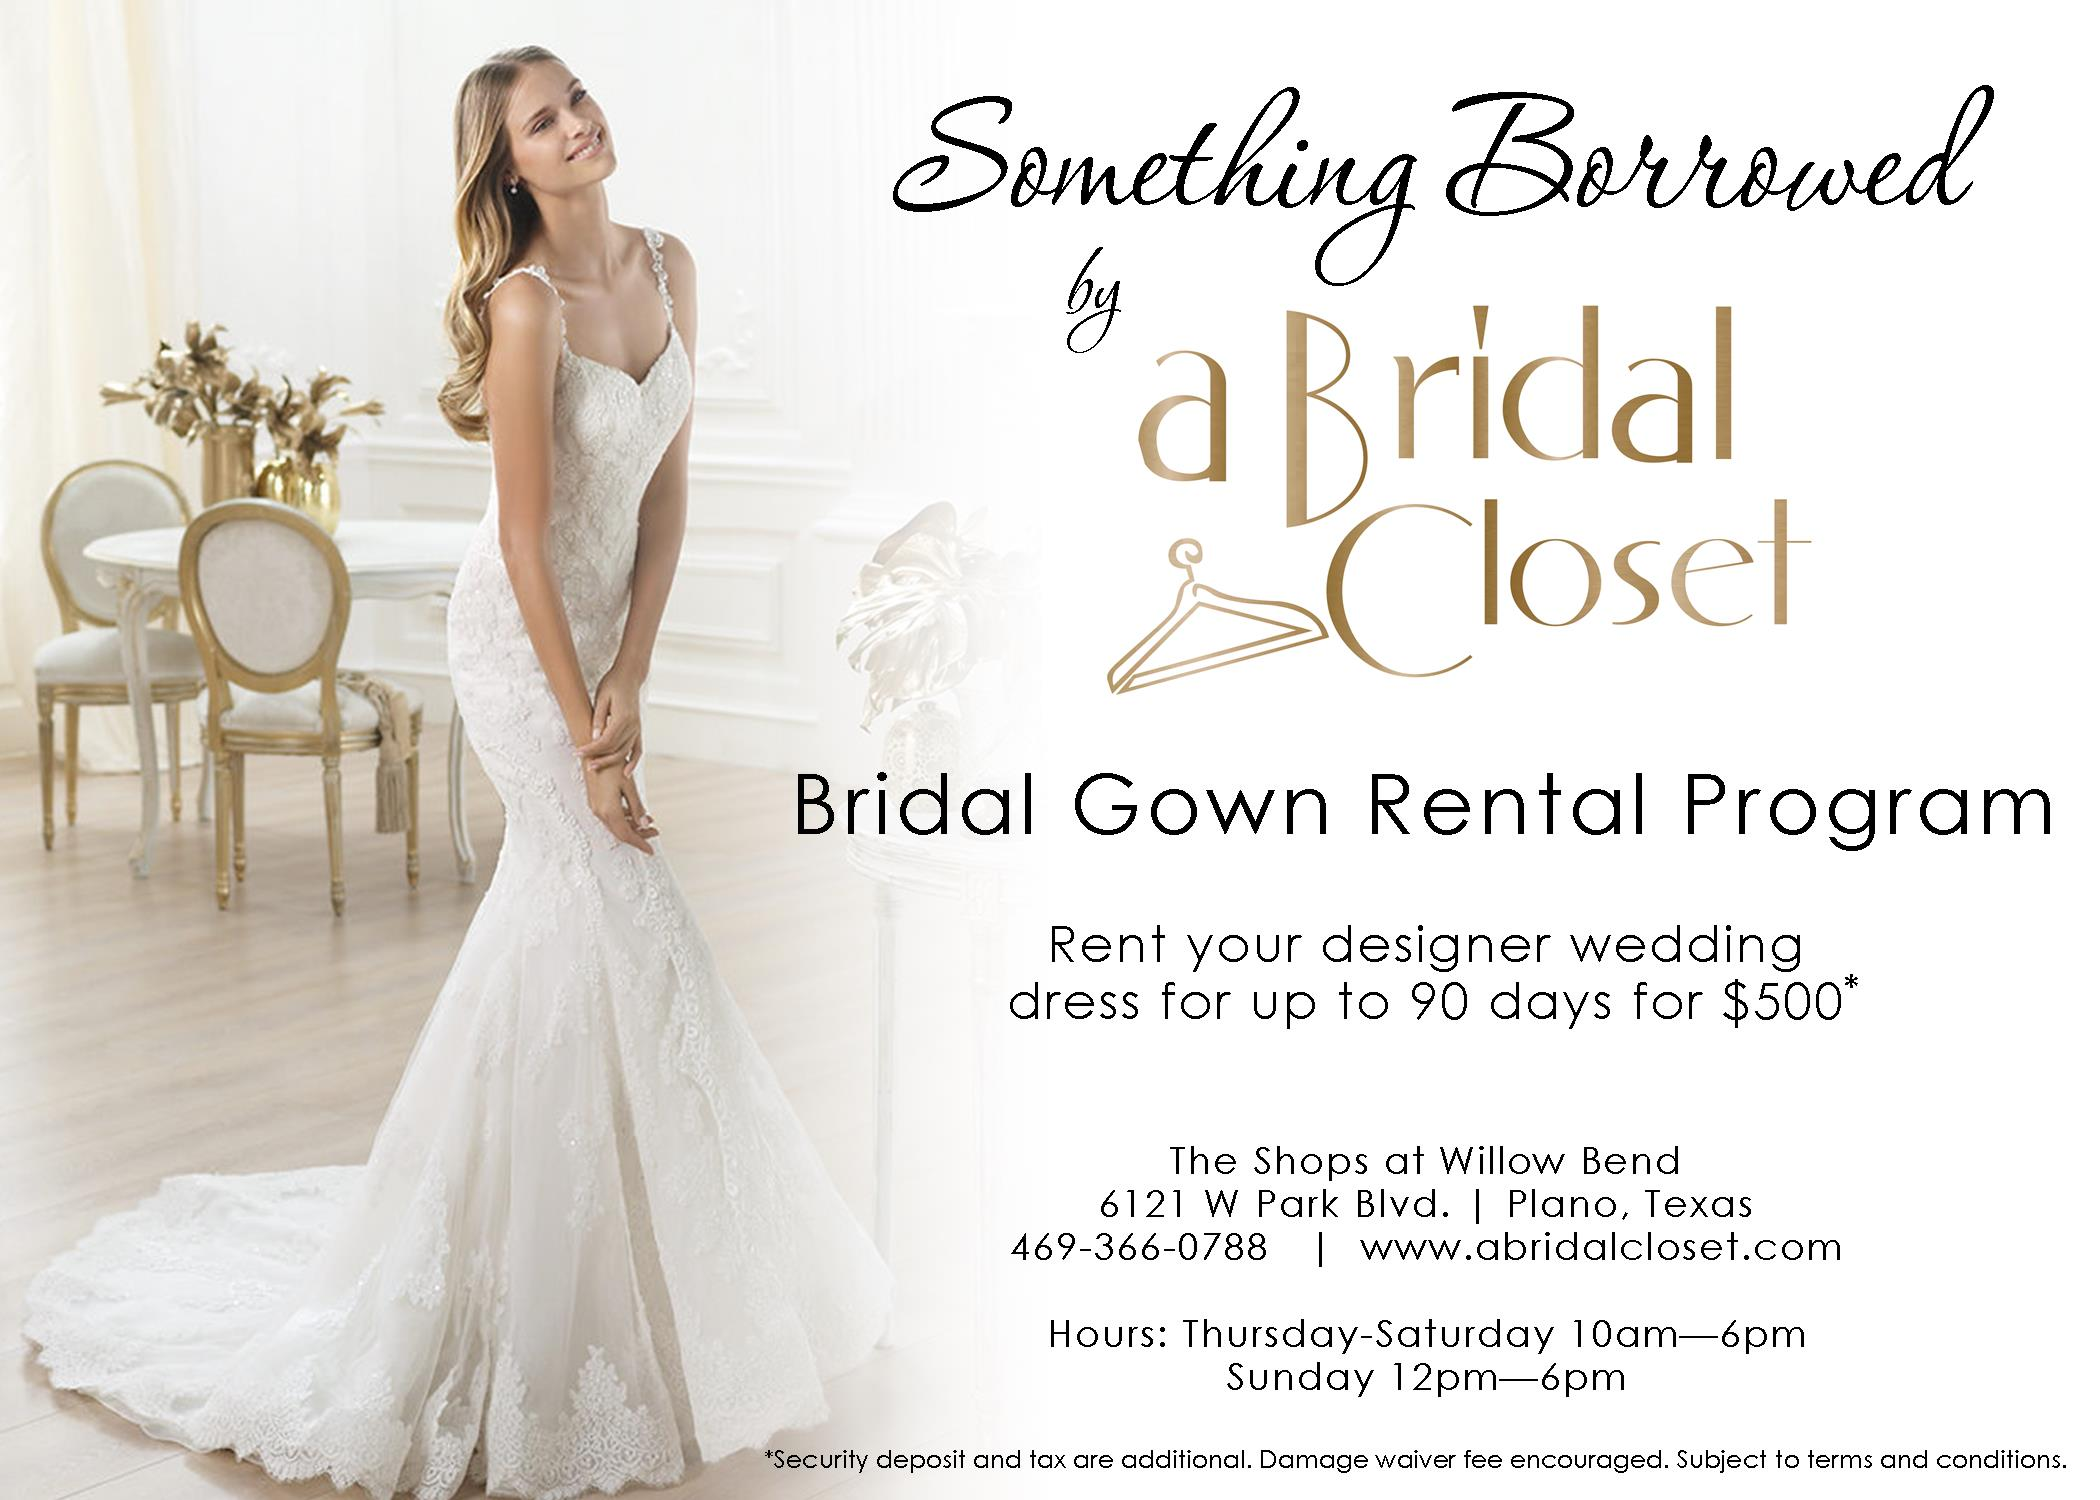 Dallas Bridal Outlet| A Bridal Closet